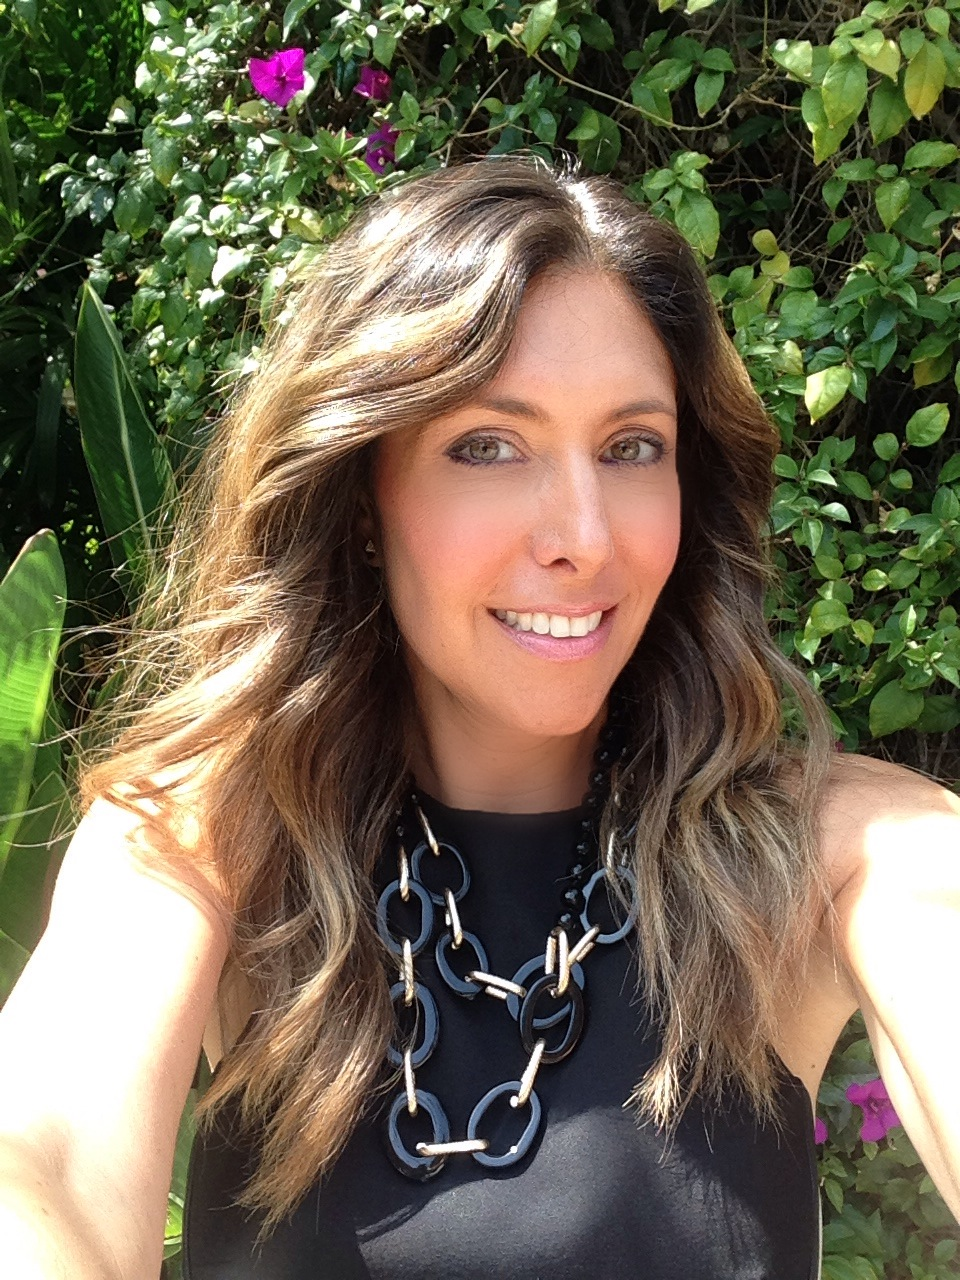 Selfie: My summer hair is dry and looks damaged at the ends. Necklace by Essie Collection. Contact  Esther@essiecollection.com  for more details.